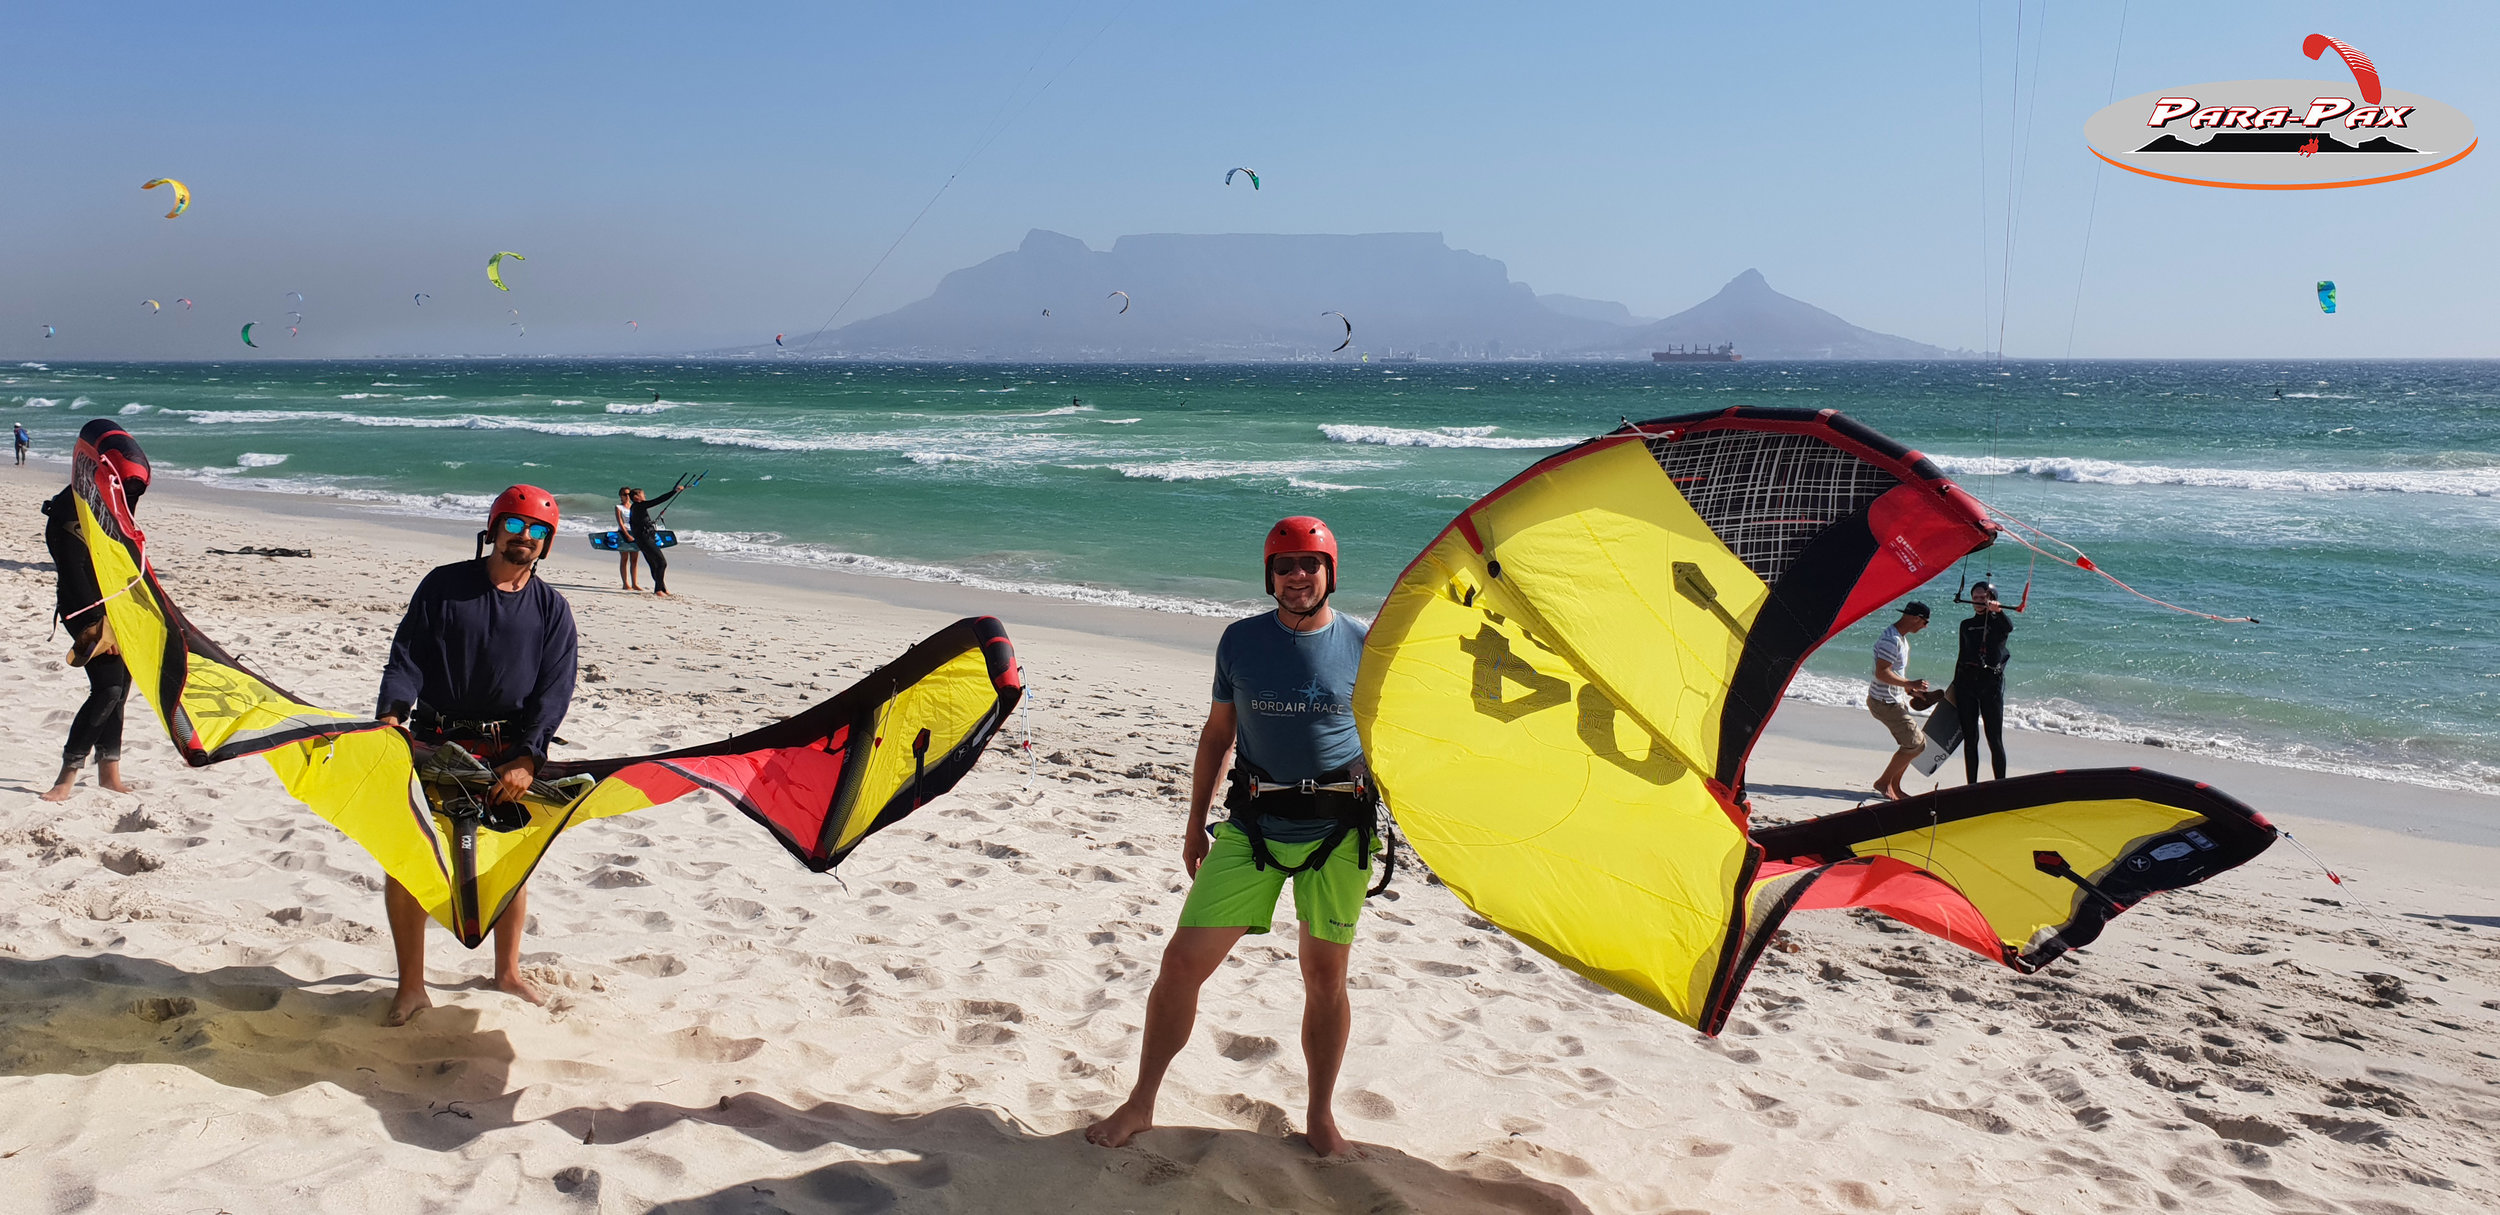 "7 DAY TOUR - CAPE TOWN AND SURROUNDING AREA   This tour will be a proper exploration of Cape Town and surrounding areas which includes Porterville and Hermanus. Detailed itinerary will be provided. This tour is for the beginner to the more experienced paragliding pilot. This tour moves around relative to the weather.  06 December - 12 December 2019 - 7 day XC and competition guiding presented by the one and only Andreas ""Pepe"" Malecki (Pre Porterville competition) (Limited spots available) 06 January - 13 January 2020 - 7 day tour (Available) 25 February - 02 March 2020 - 7 day tour (Available)"